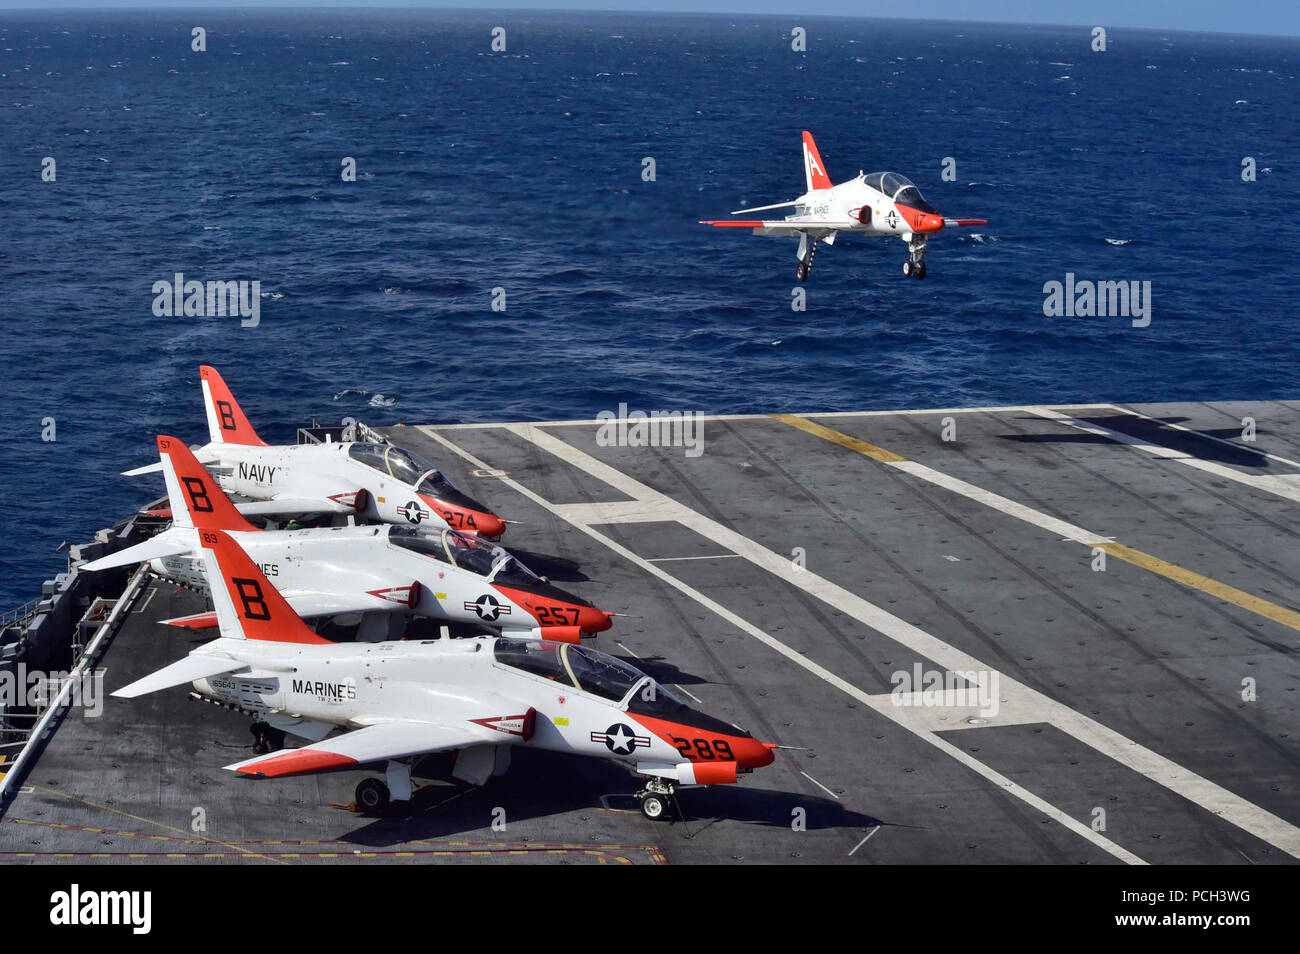 ATLANTIC OCEAN (Feb. 4, 2016) A T-45C Goshawk assigned to Carrier Training Wing (CTW) 2 lands on the flight deck of the aircraft carrier USS Dwight D. Eisenhower (CVN 69). Dwight D. Eisenhower is currently underway preparing for the upcoming Board of Inspection and Survey (INSURV) and conducting carrier qualifications. - Stock Image